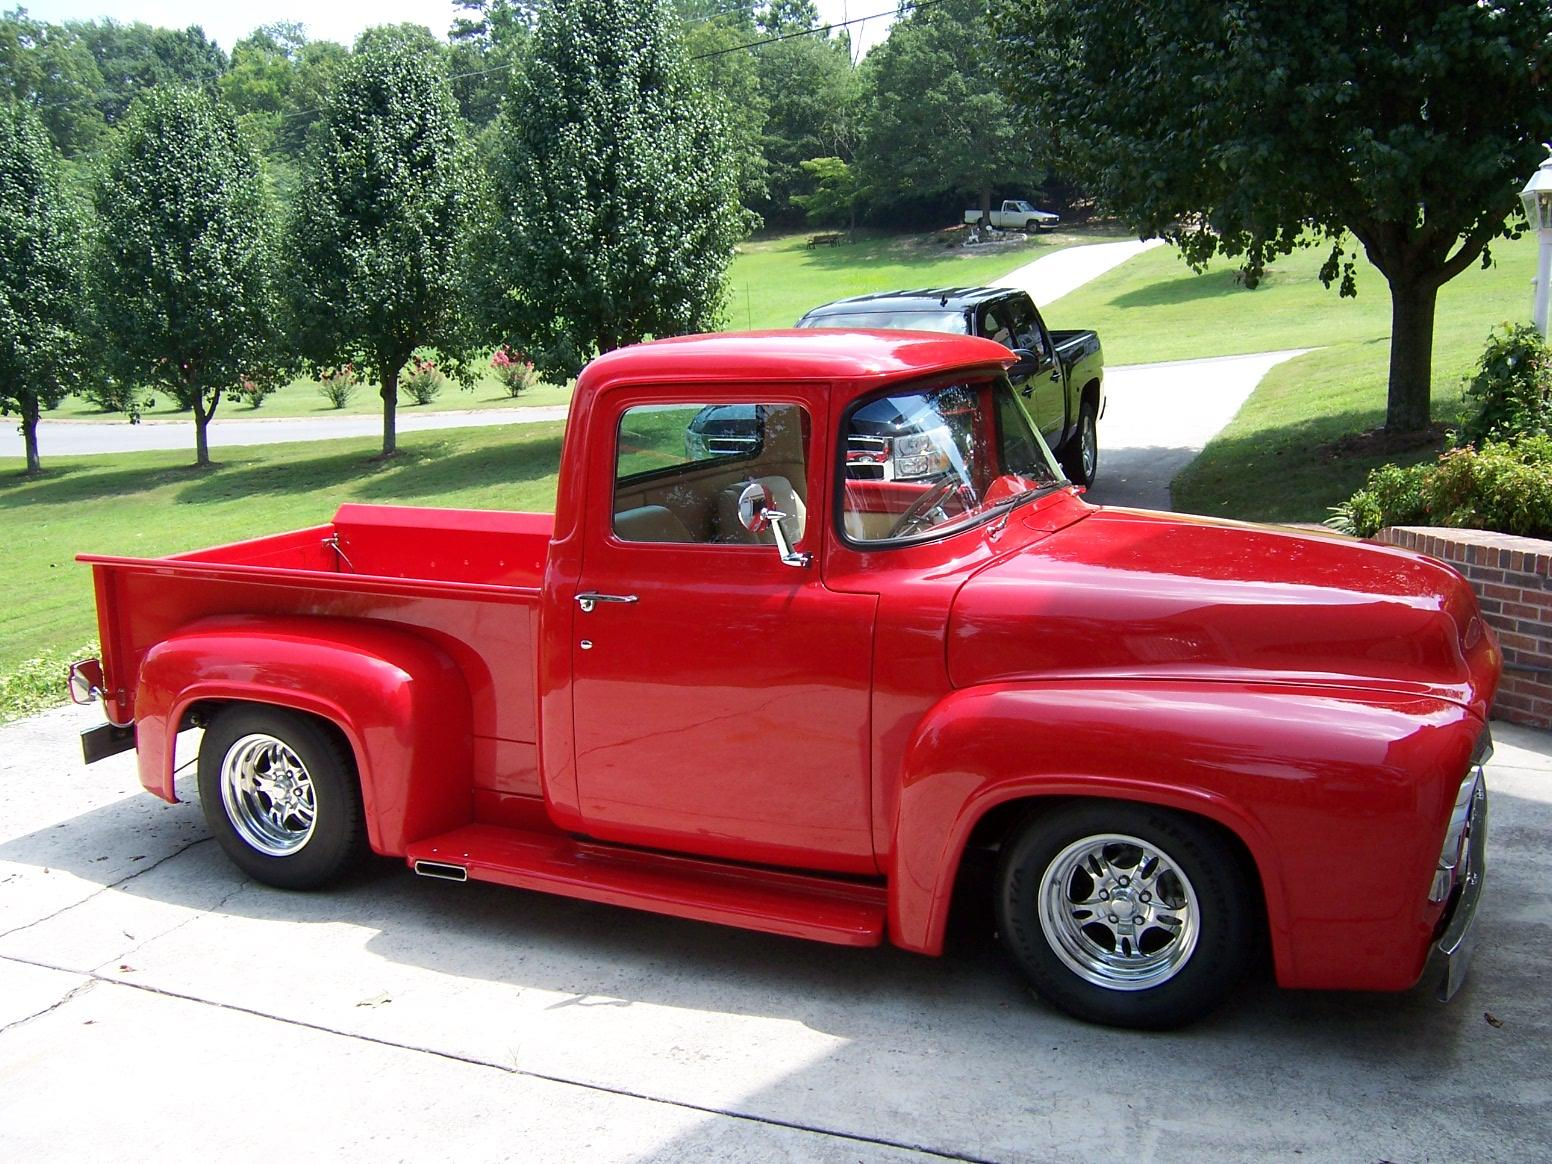 Henryupholstery 1955 Chevrolet 150 Specs Photos Modification Info Chevy 4x4 Lifted Trucks 1956 Ford F150 Regular Cab